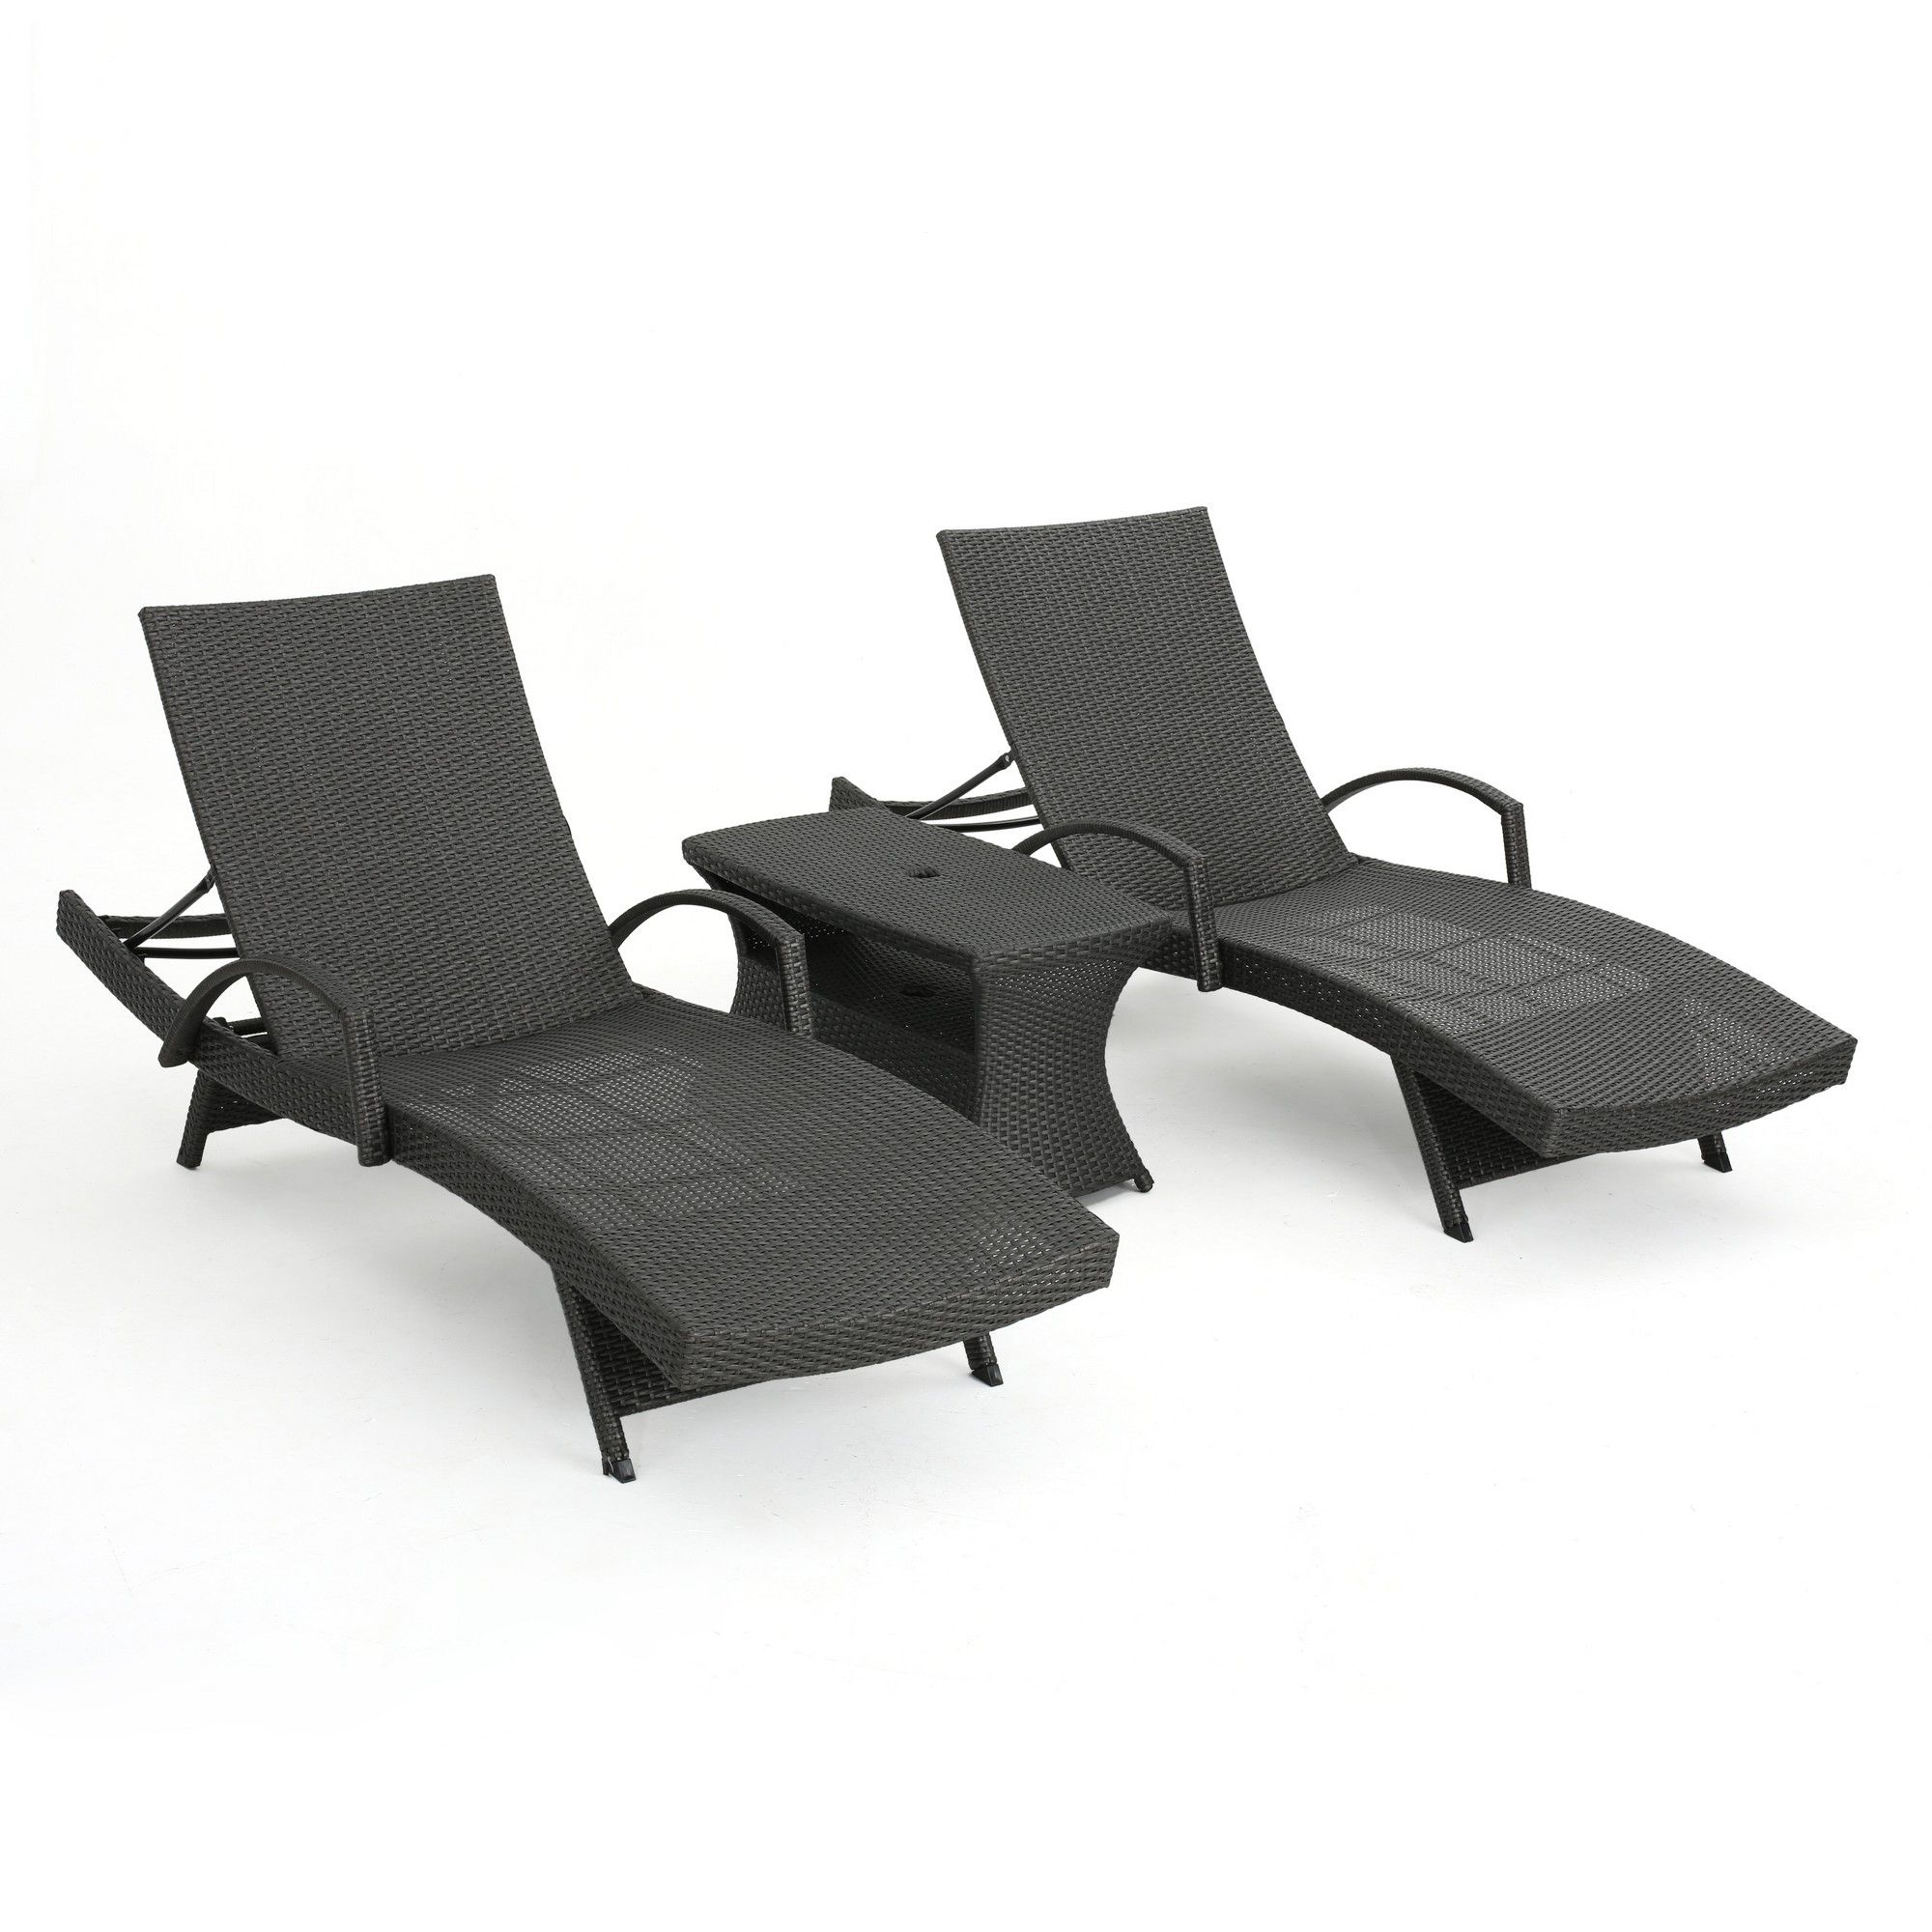 Salem 3pc Wicker Adjustable Arm Chaise Lounge Set – Gray Pertaining To Famous Havenside Home Surfside Rutkoske Outdoor Wood Chaise Lounges (View 16 of 25)